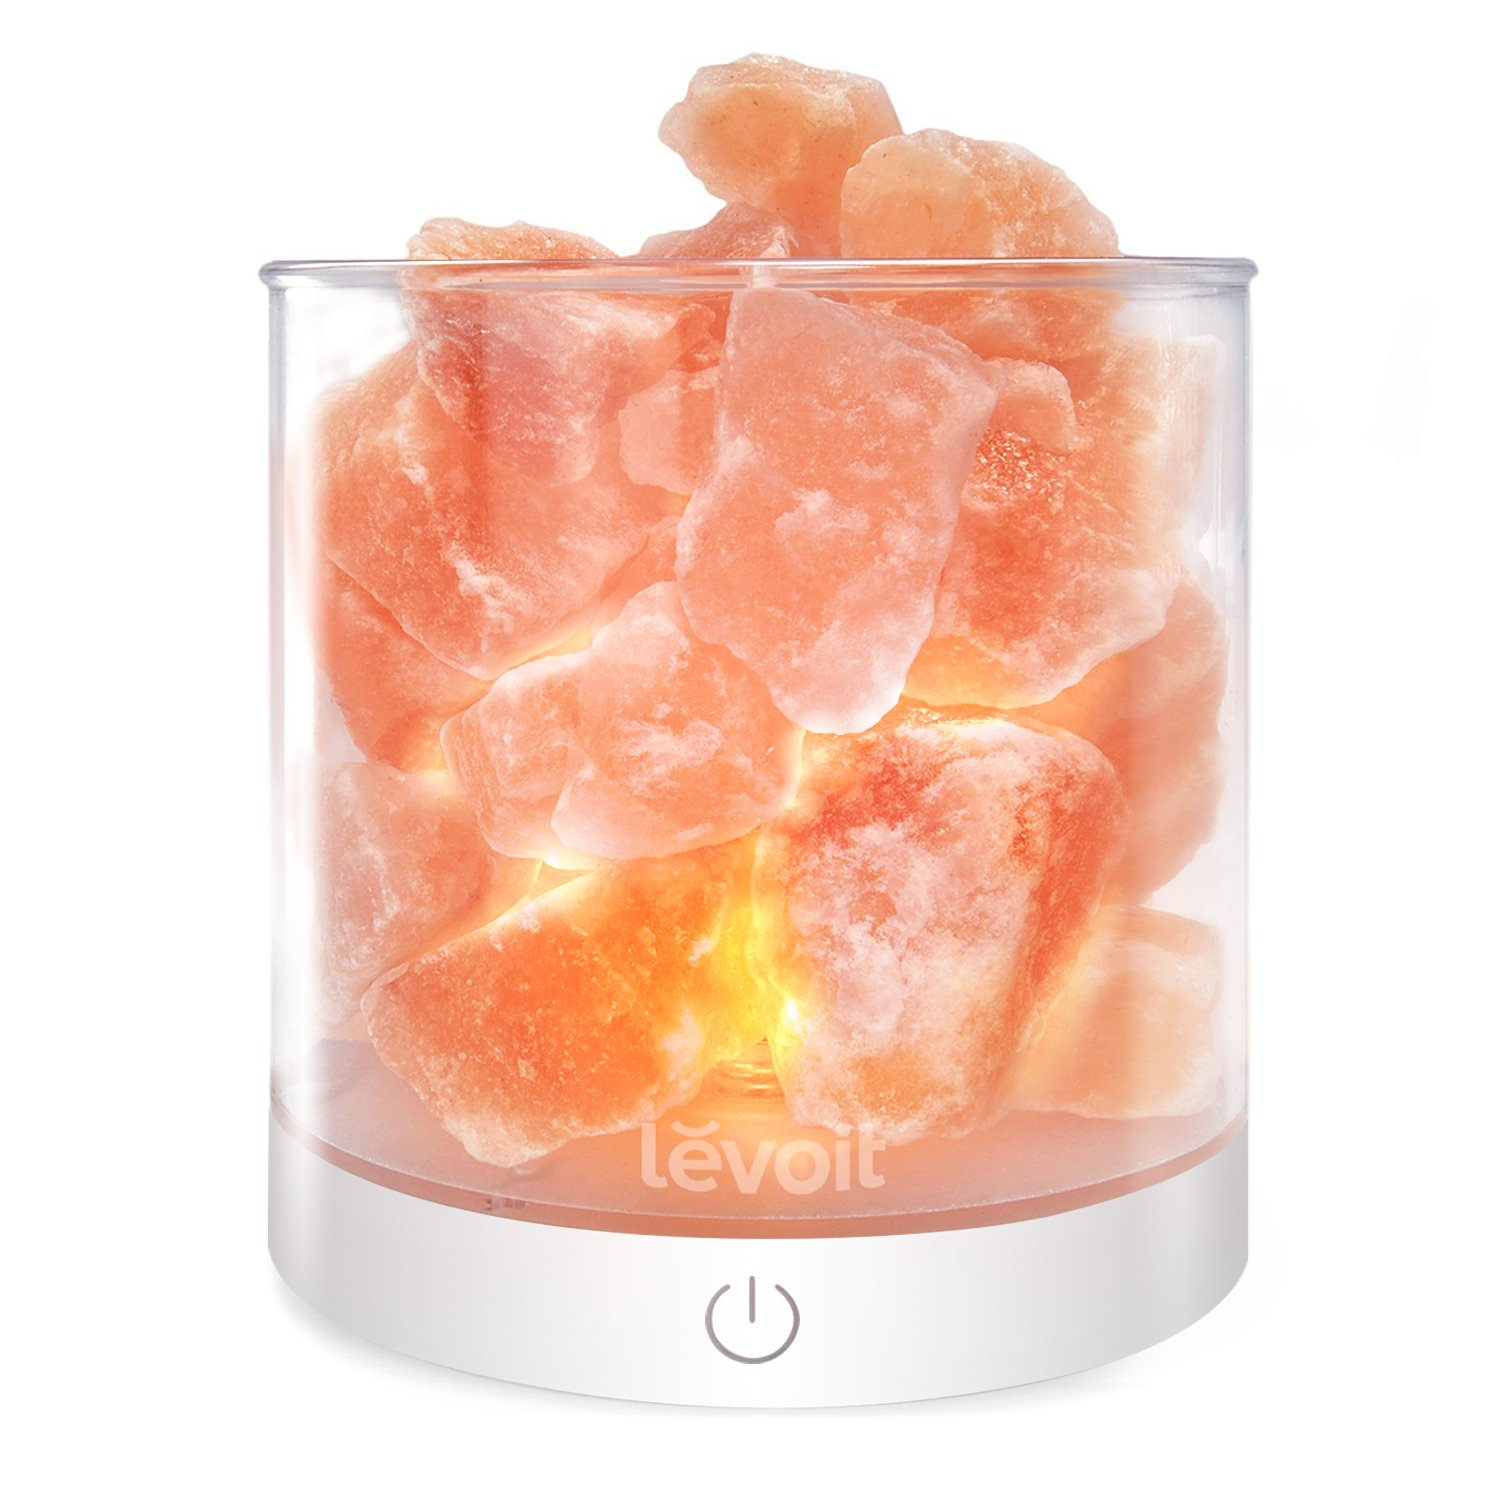 Levoit Cora Himalayan Salt Lamp, Natural Hymalain Pink Salt Rock Lamps, USB Himilian Sea Salt Crystal Night Light with Touch Dimmer Switch,3 Bulbs,UL-Listed Cord & Luxury Gift Box by LEVOIT